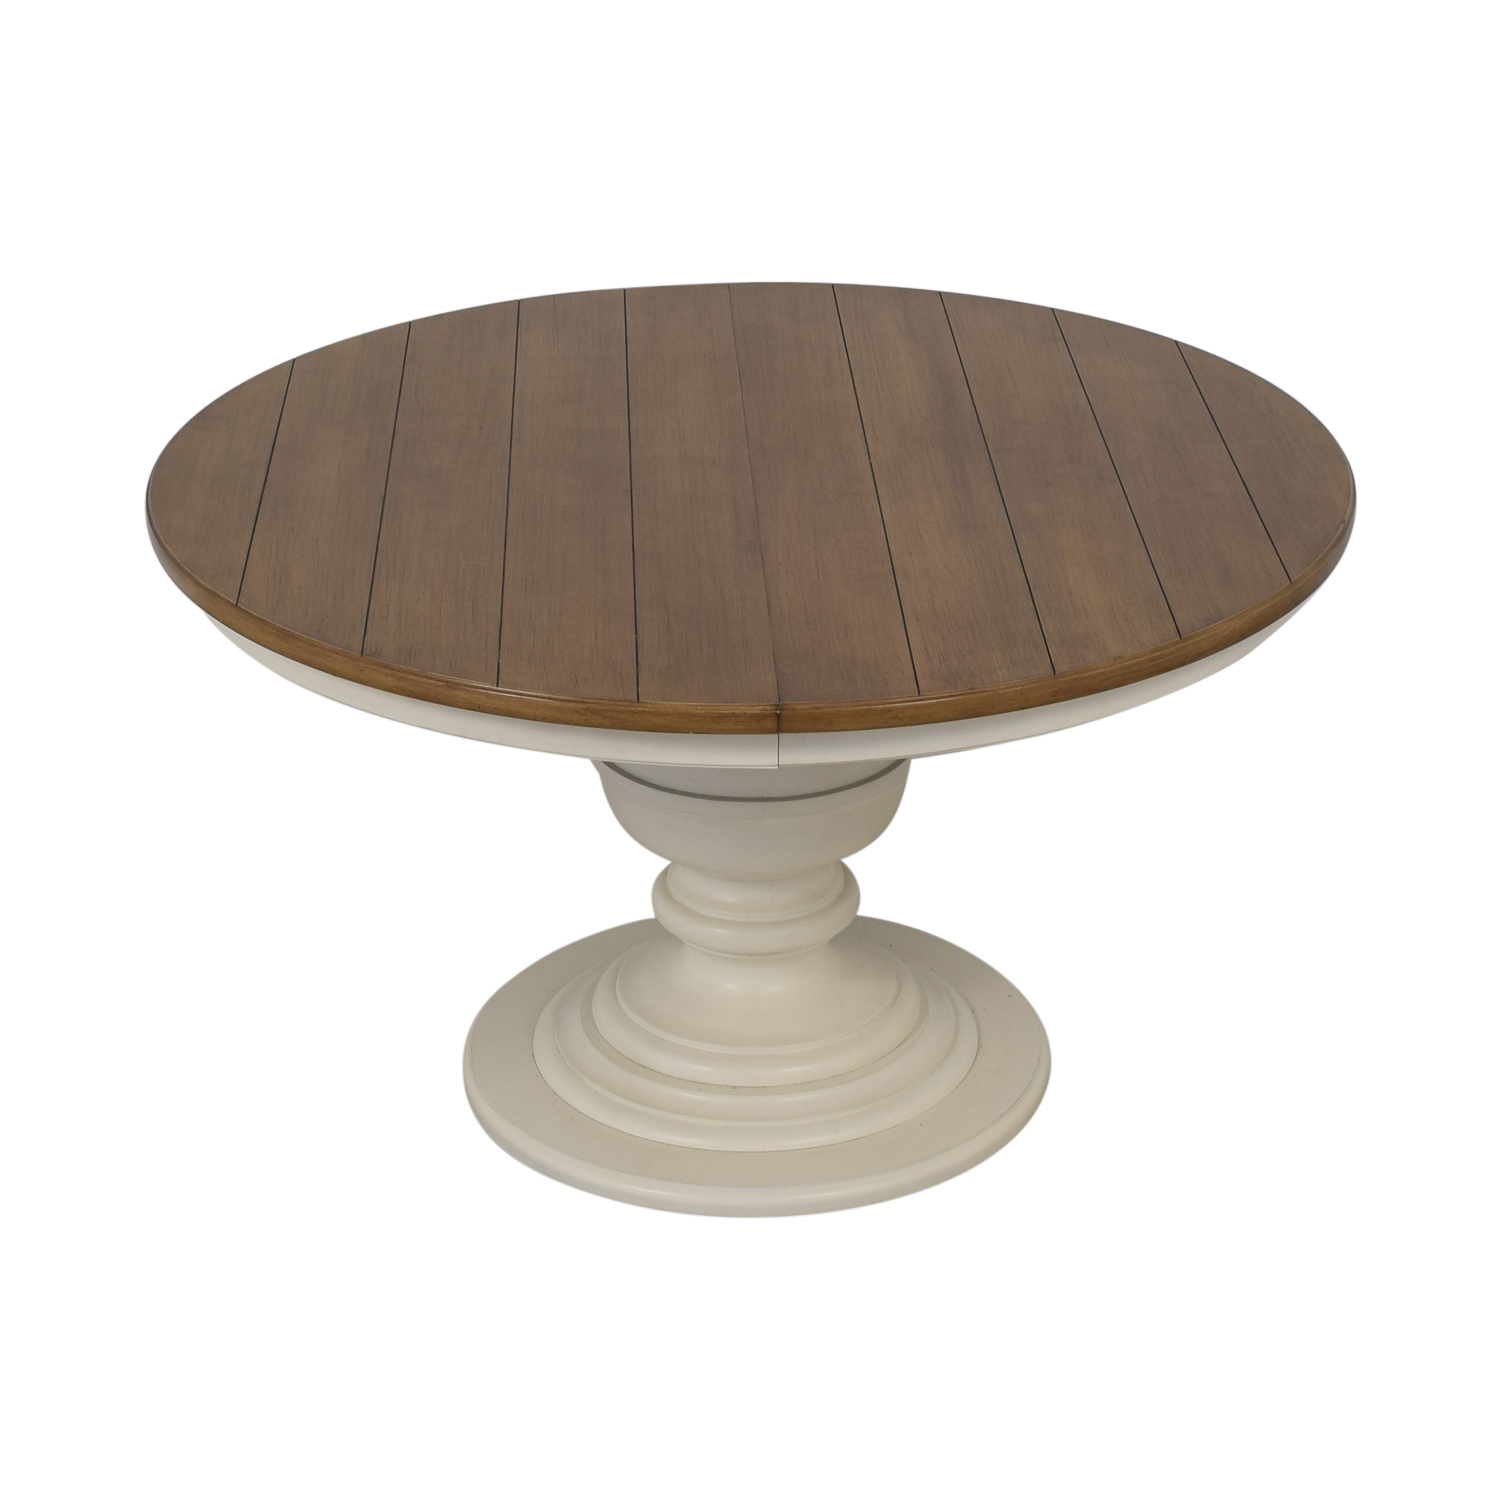 71 Off Macy S Macy S Sag Harbor Expandable Round Dining Pedestal Table Tables